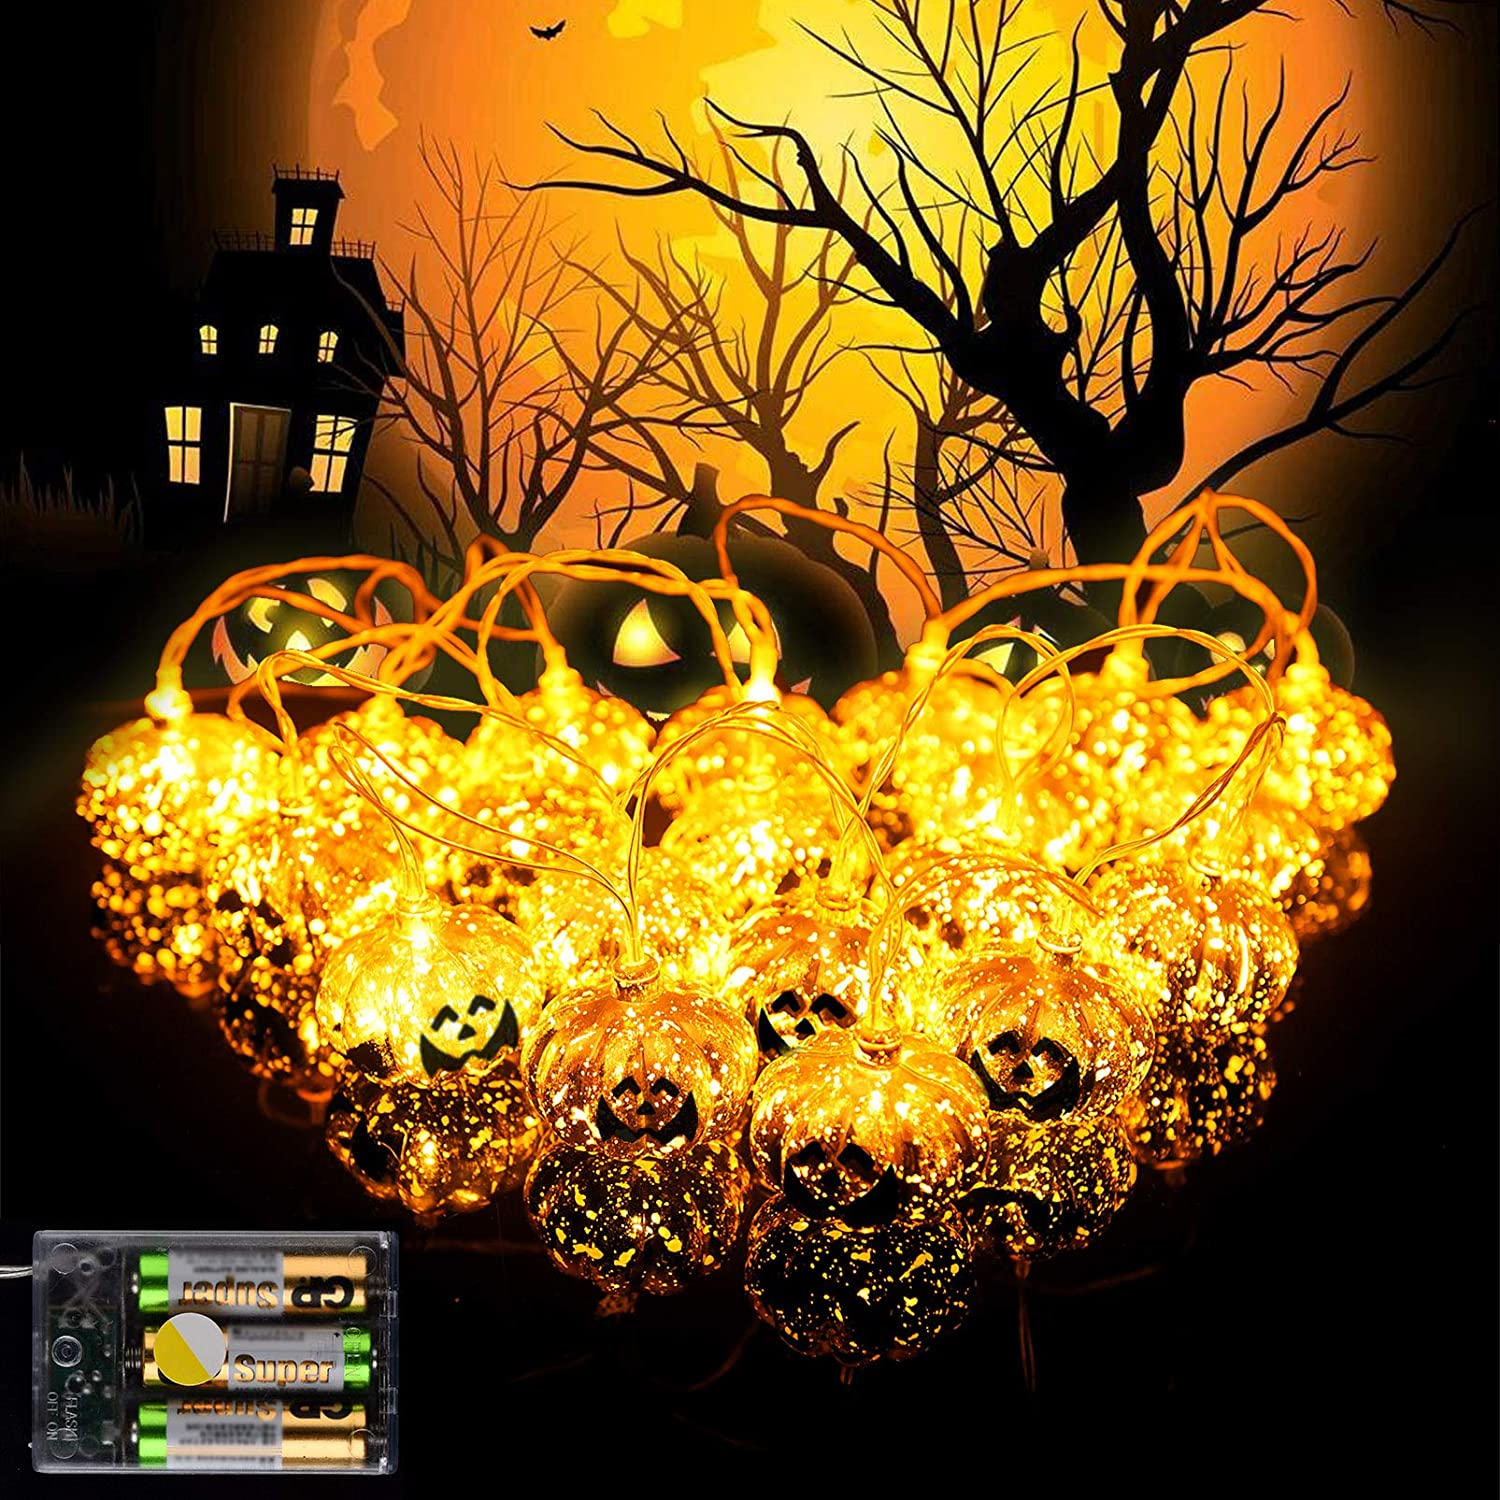 RUN Halloween String Lights LED Pumpkin Lights Weather Resistant 2 Modes Steady/Flickering Lights for Holiday Indoor/Outdoor Decor